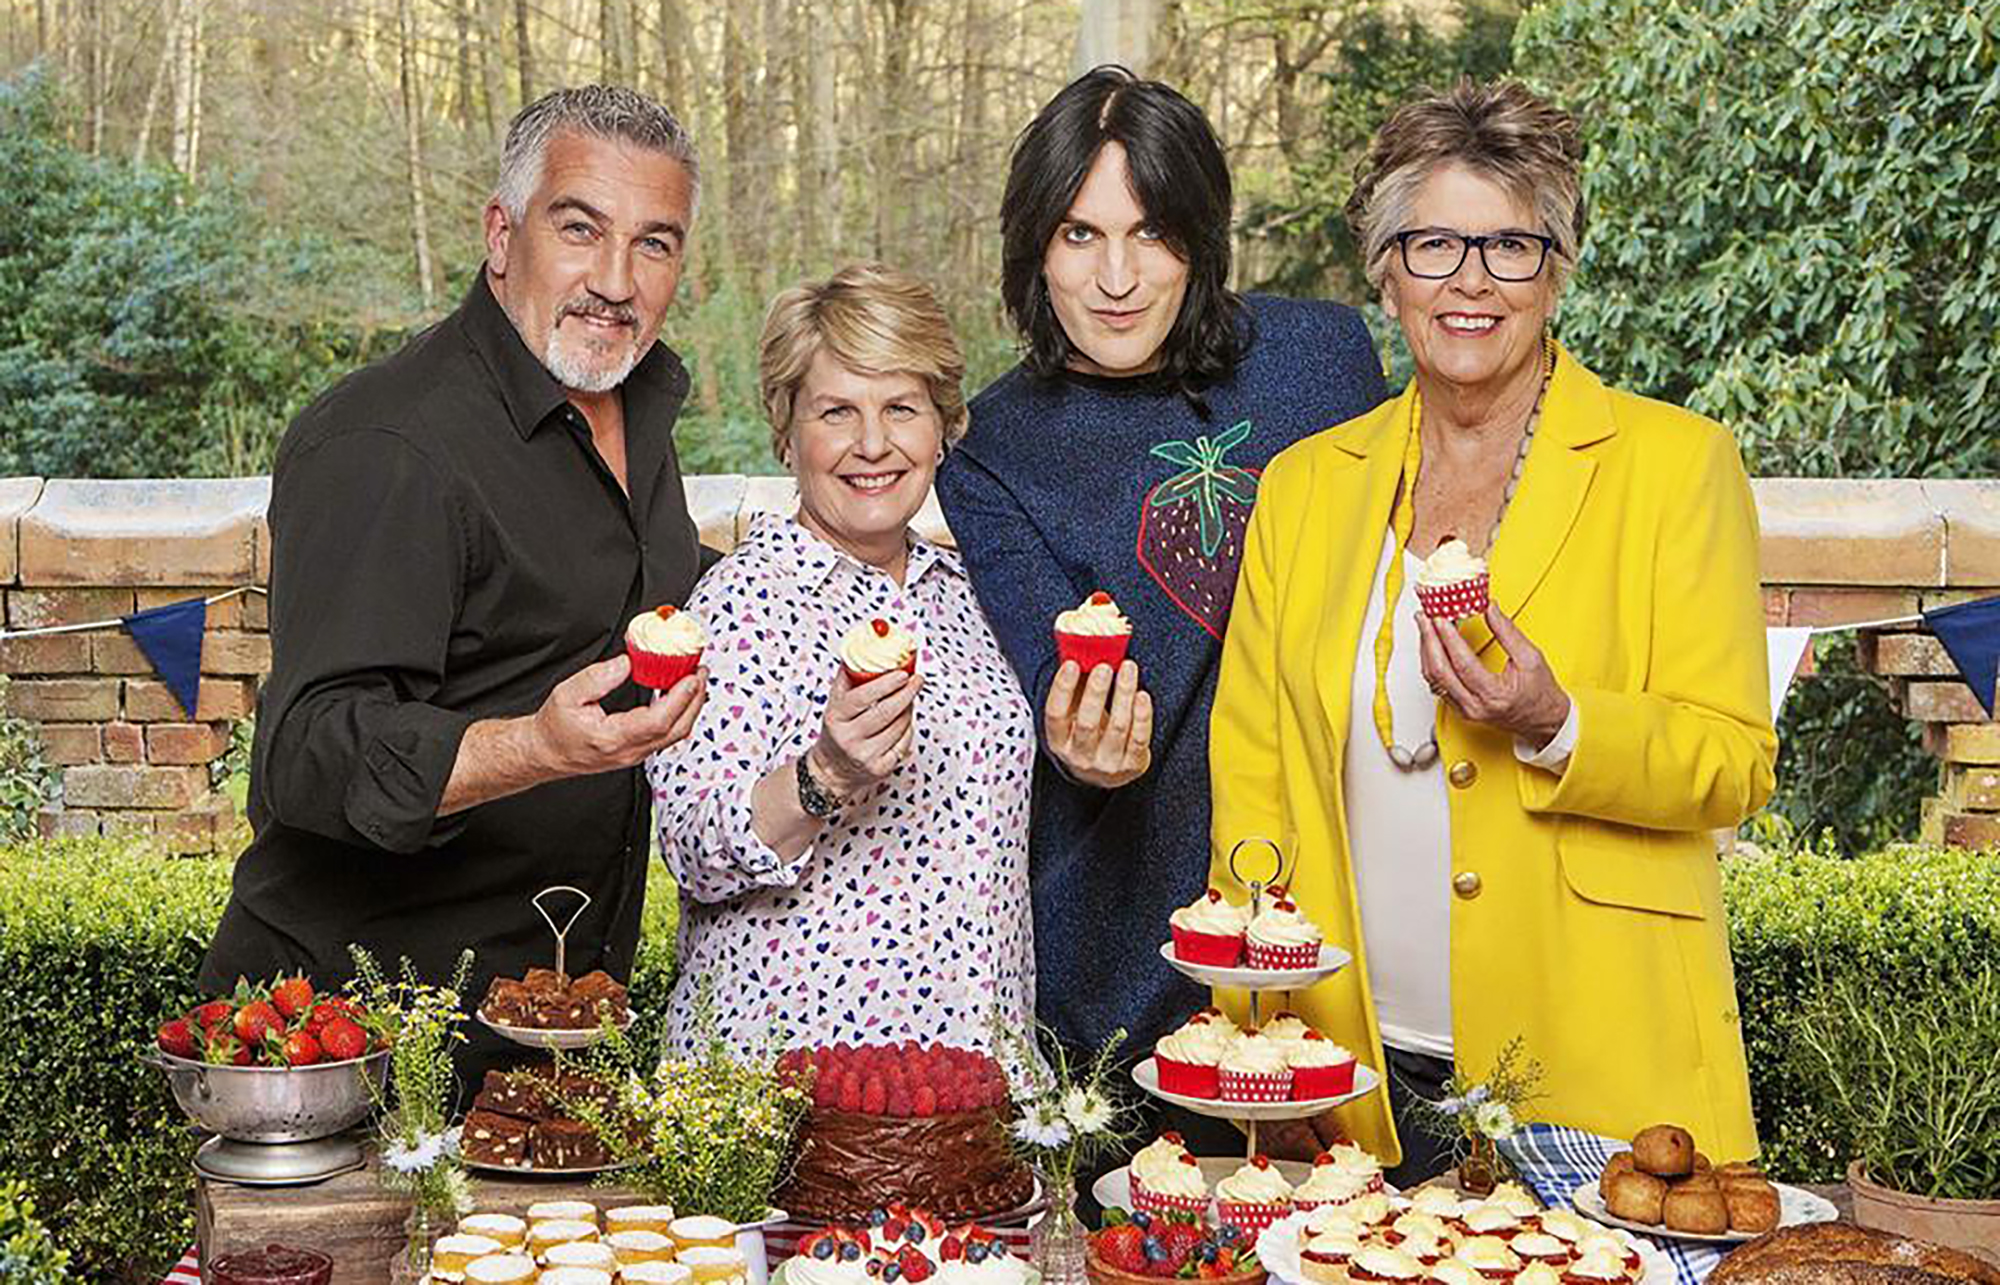 Paul Hollywood, Sandi Toksvig, Noel Fielding, and Prue Leith stand in front of a table filled with pastries holding up cupcakes with cherries on top.